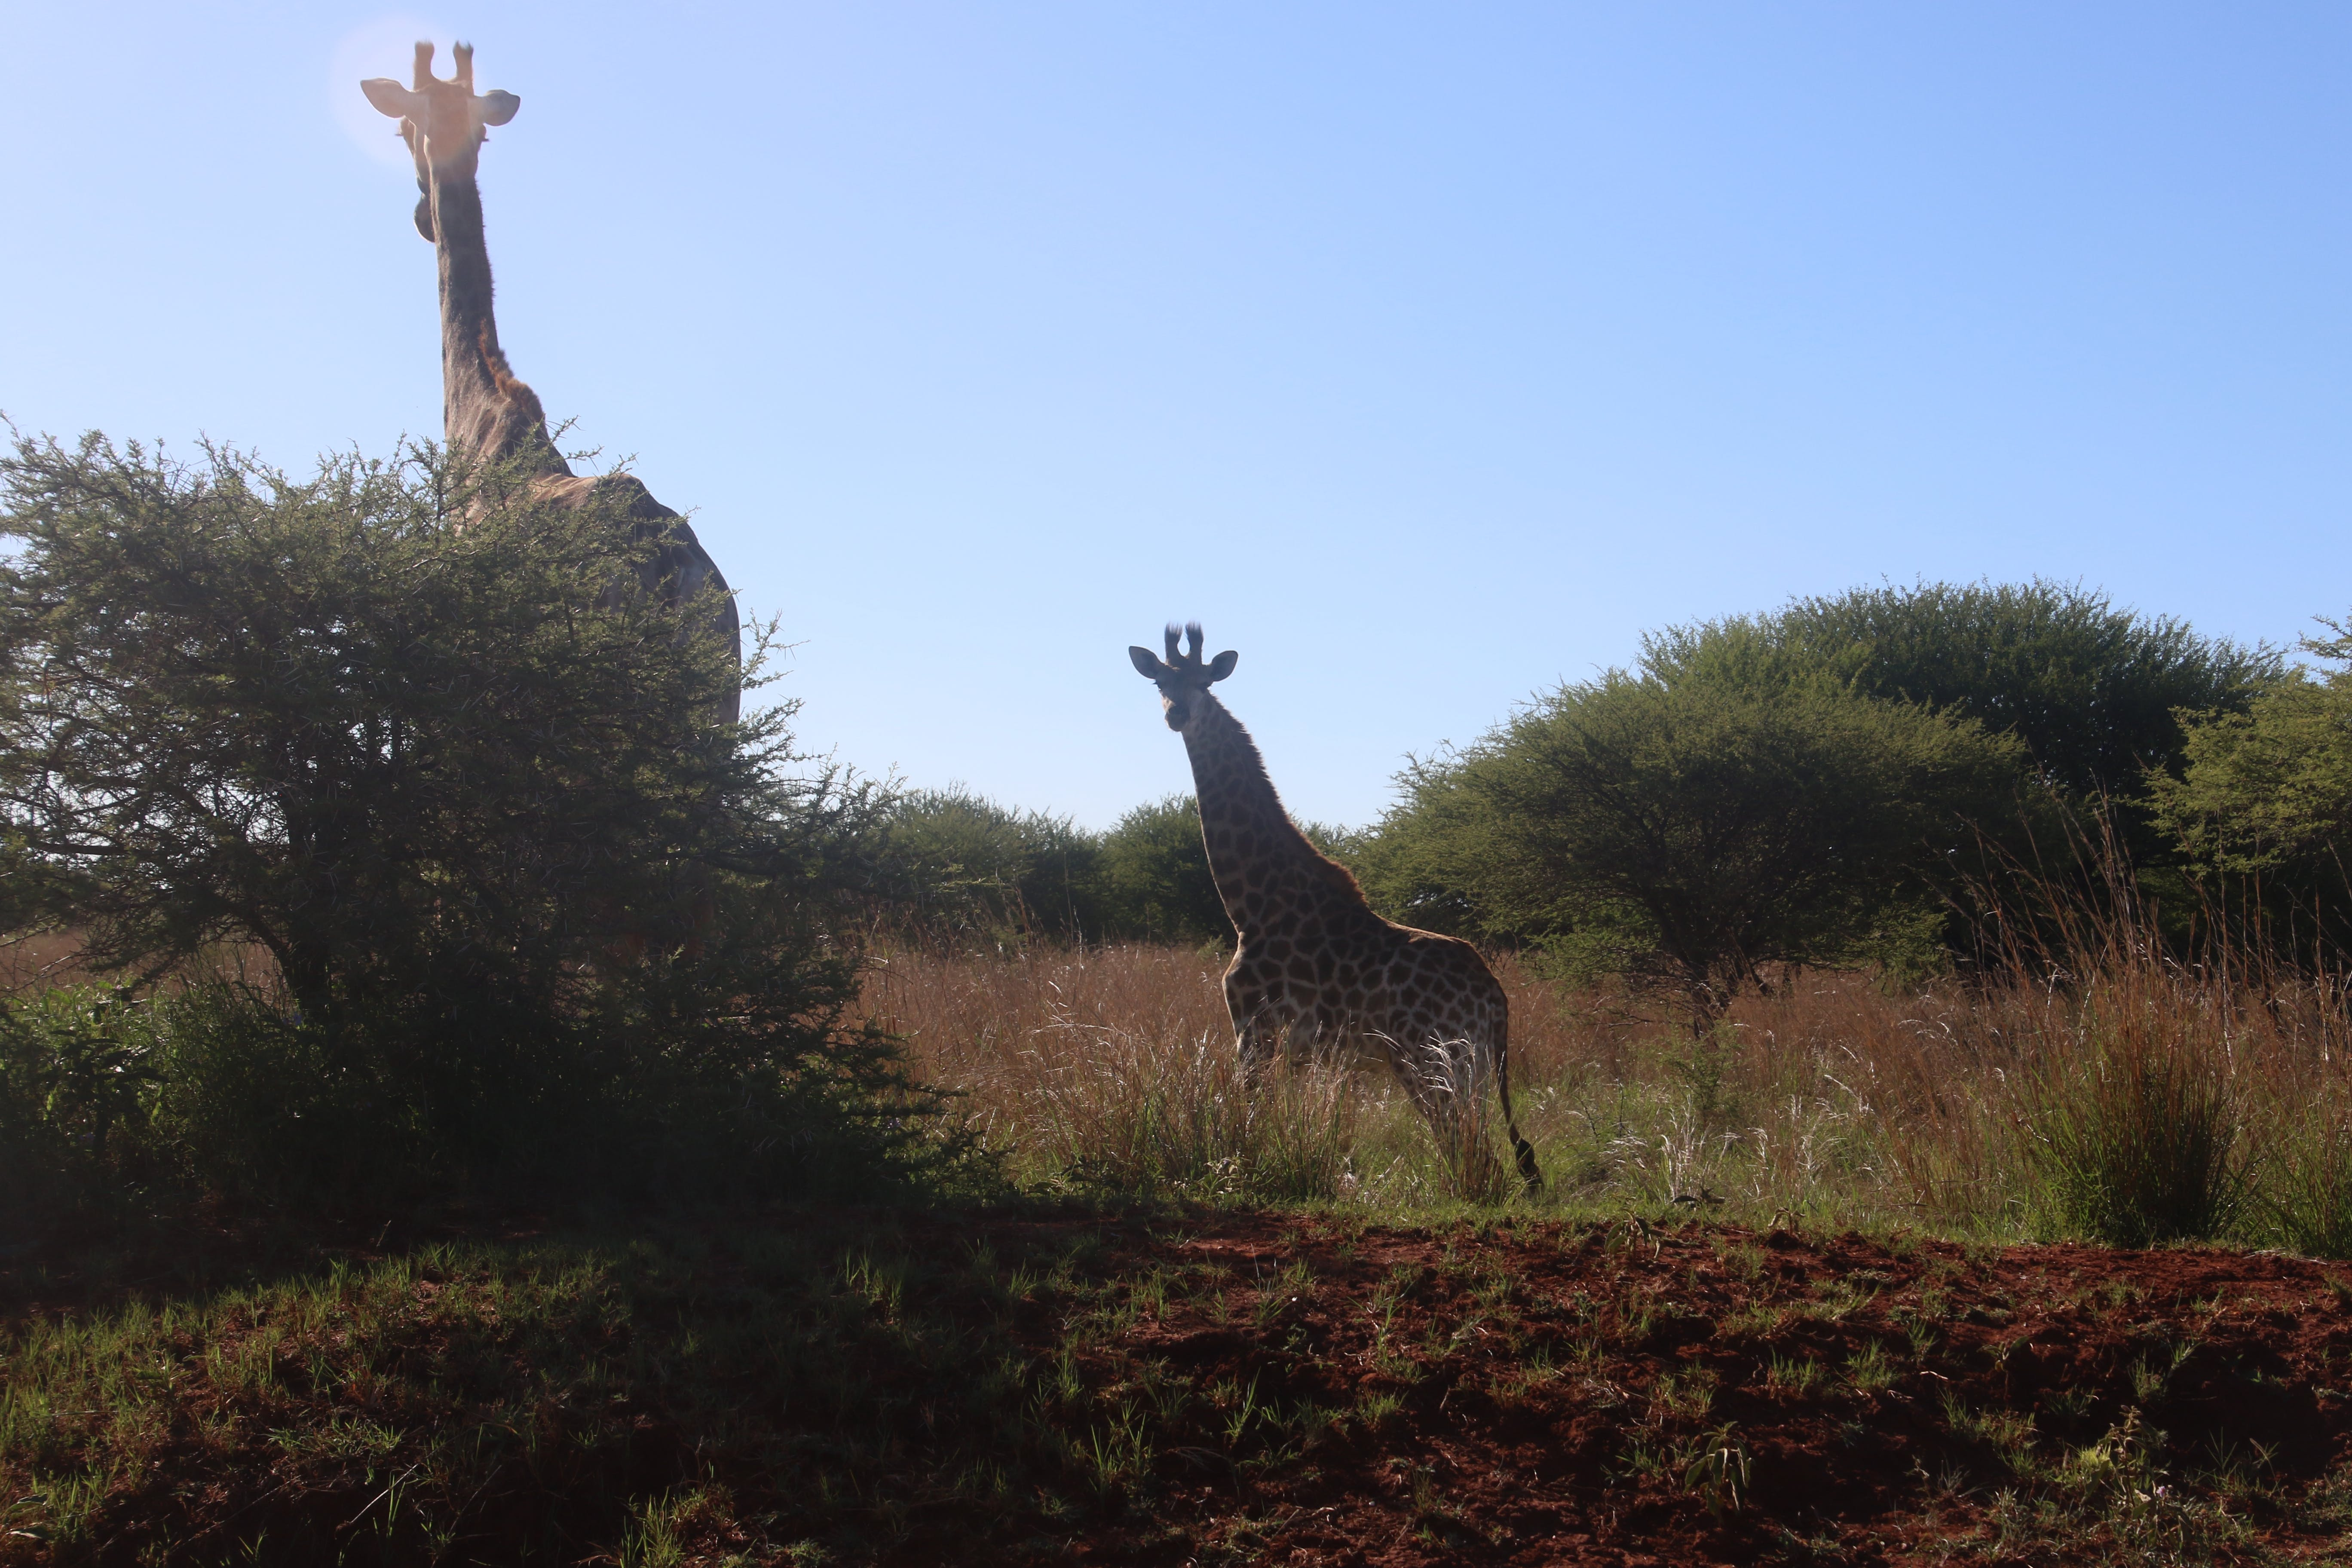 Photography of Two Giraffes Near Green Tree